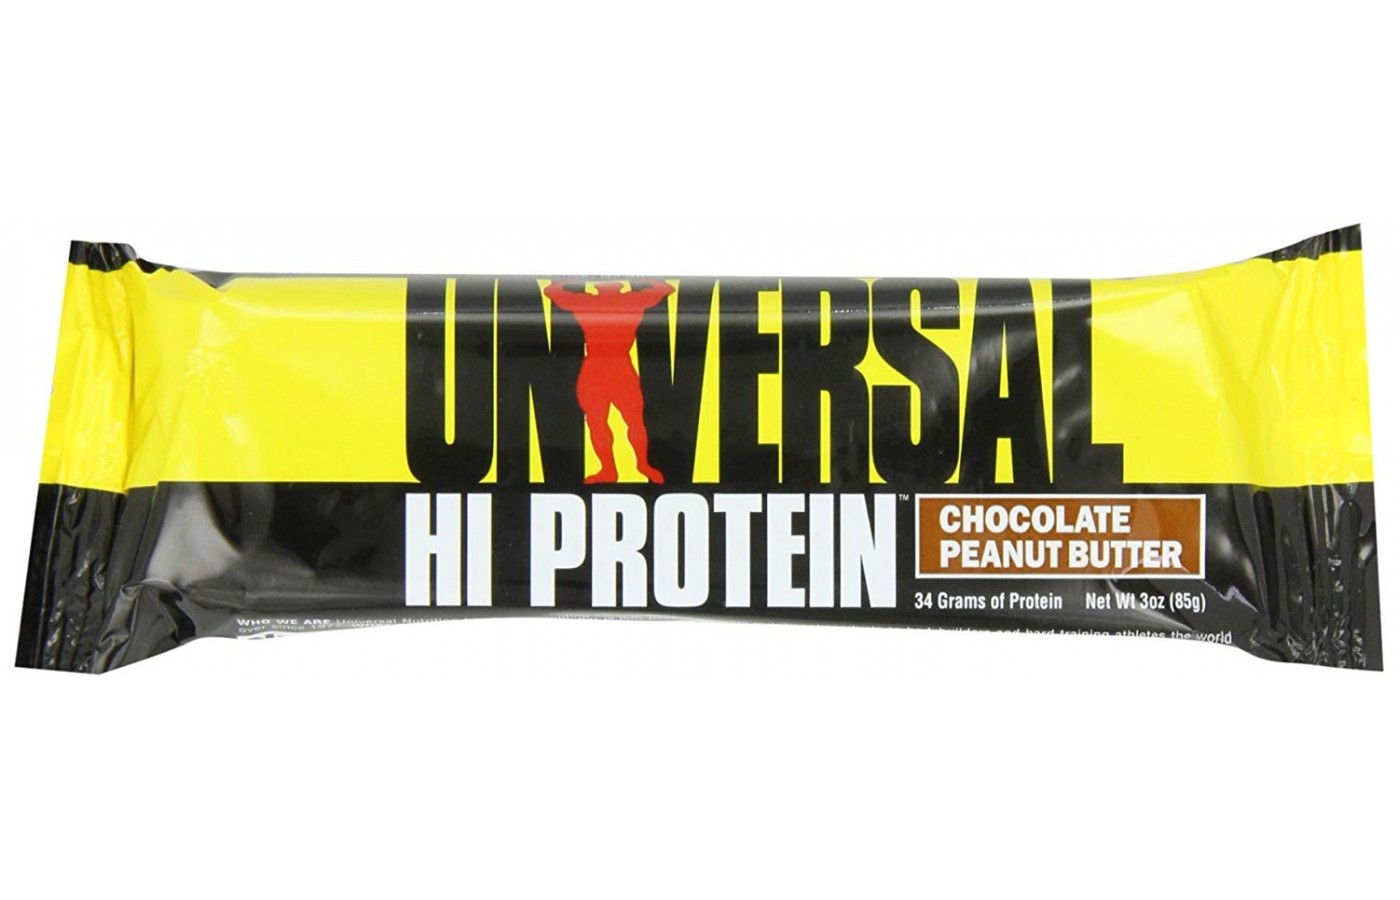 Universal Front